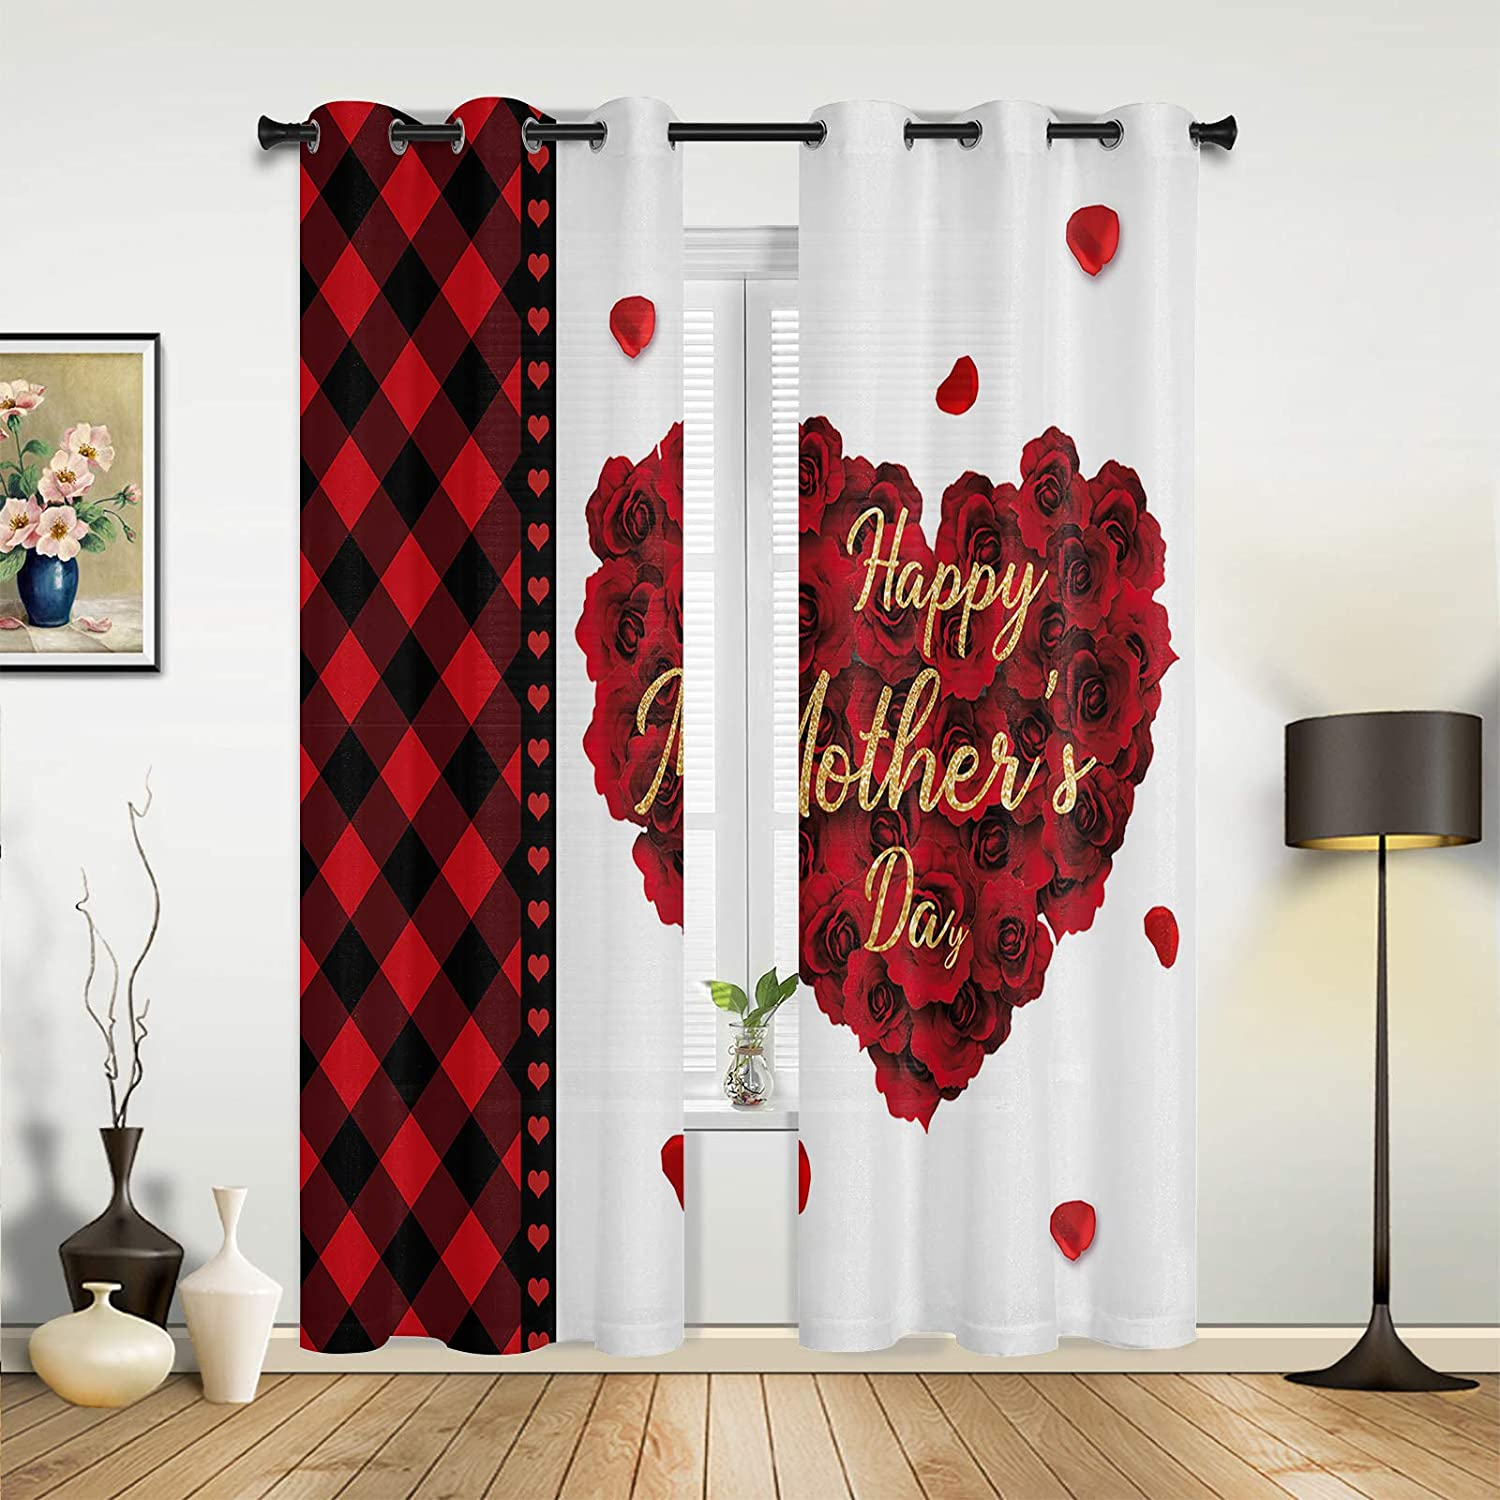 Window Cash special price Curtains Drapes Panels Happy Ro Day Romantic At the price Mother's Red